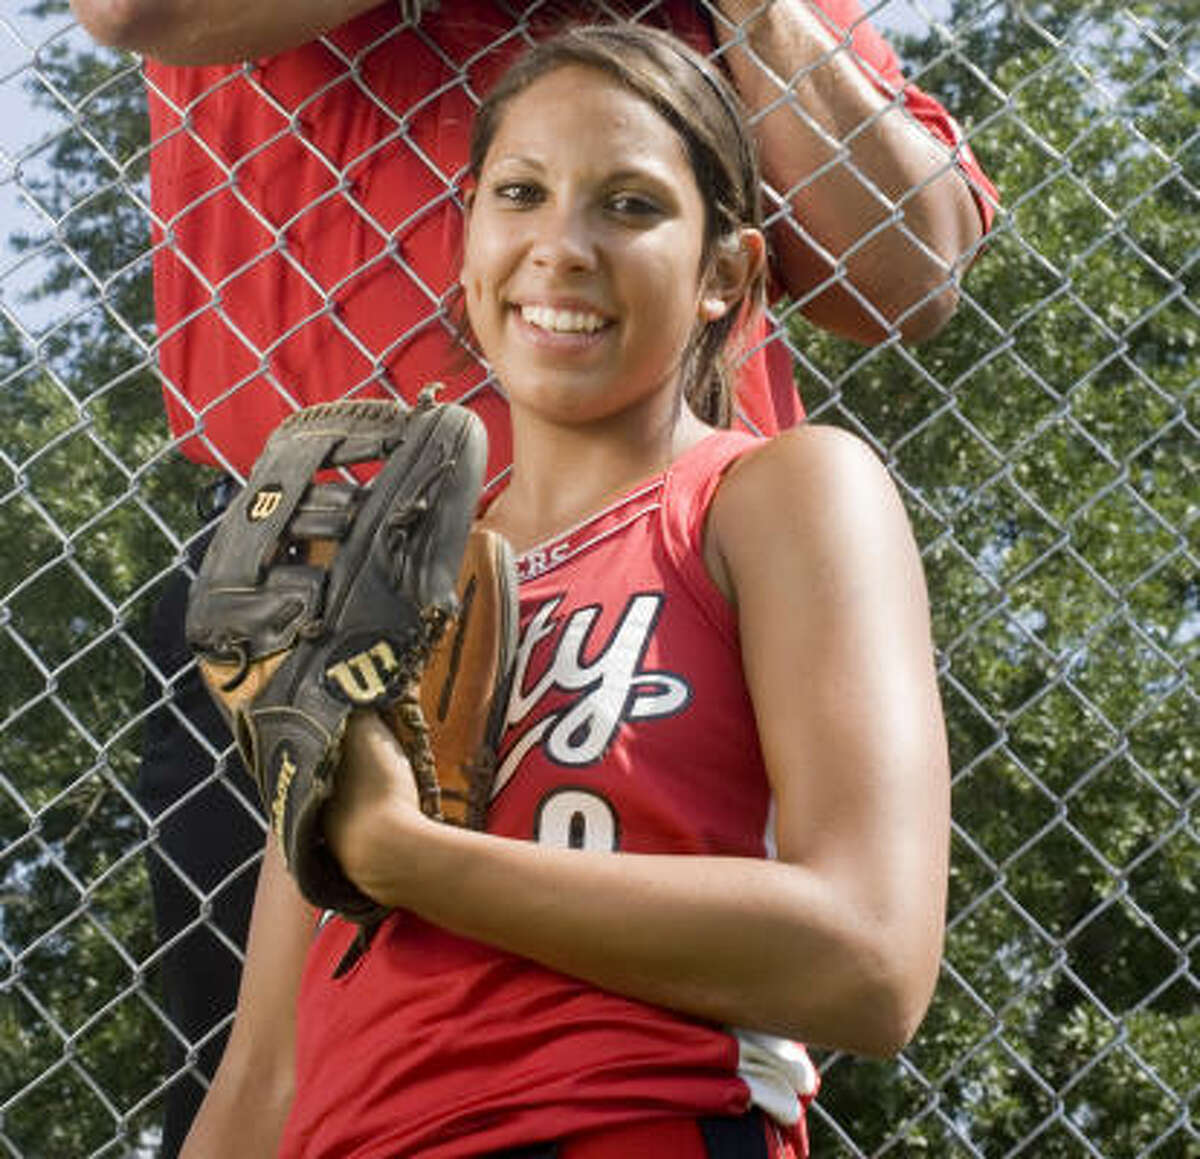 Maate Haack , Infielder, Senior, Katy Haack, who signed with Kansas, missed the 2008 postseason with a broken hand. But she played a major part in getting the Tigers there, hitting .482 and driving in 28 runs. She also is one of the most respected defensive players in the state.